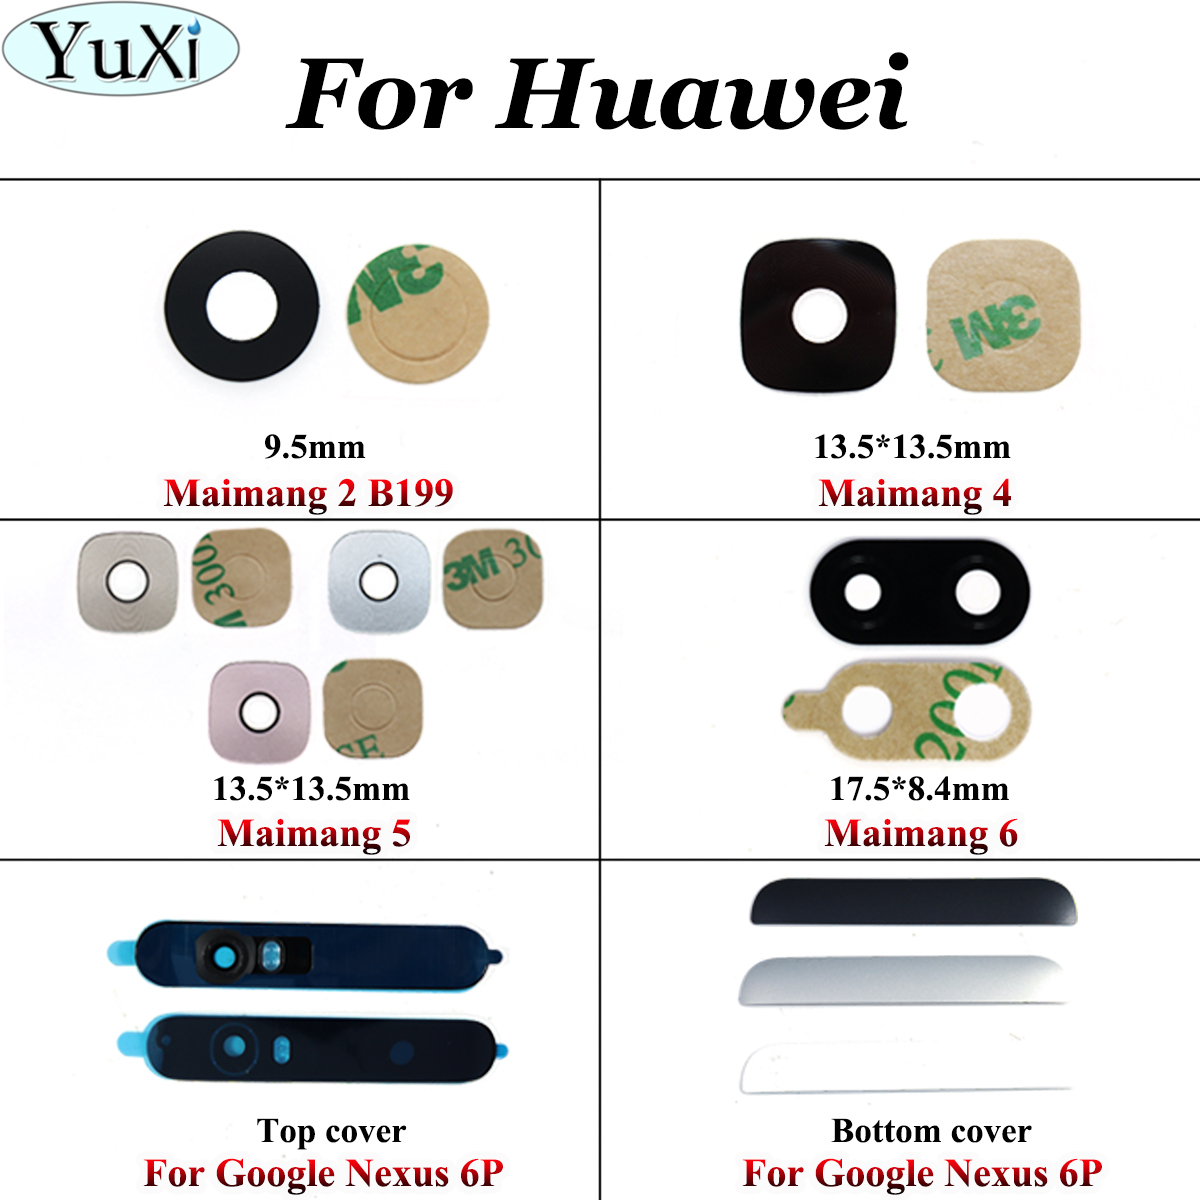 YuXi Rear Back Camera Lens Glass Replacement For Huawei For Google Nexus 6P For Huawei Maimang 6 5 4 2 B199 With Adhesive